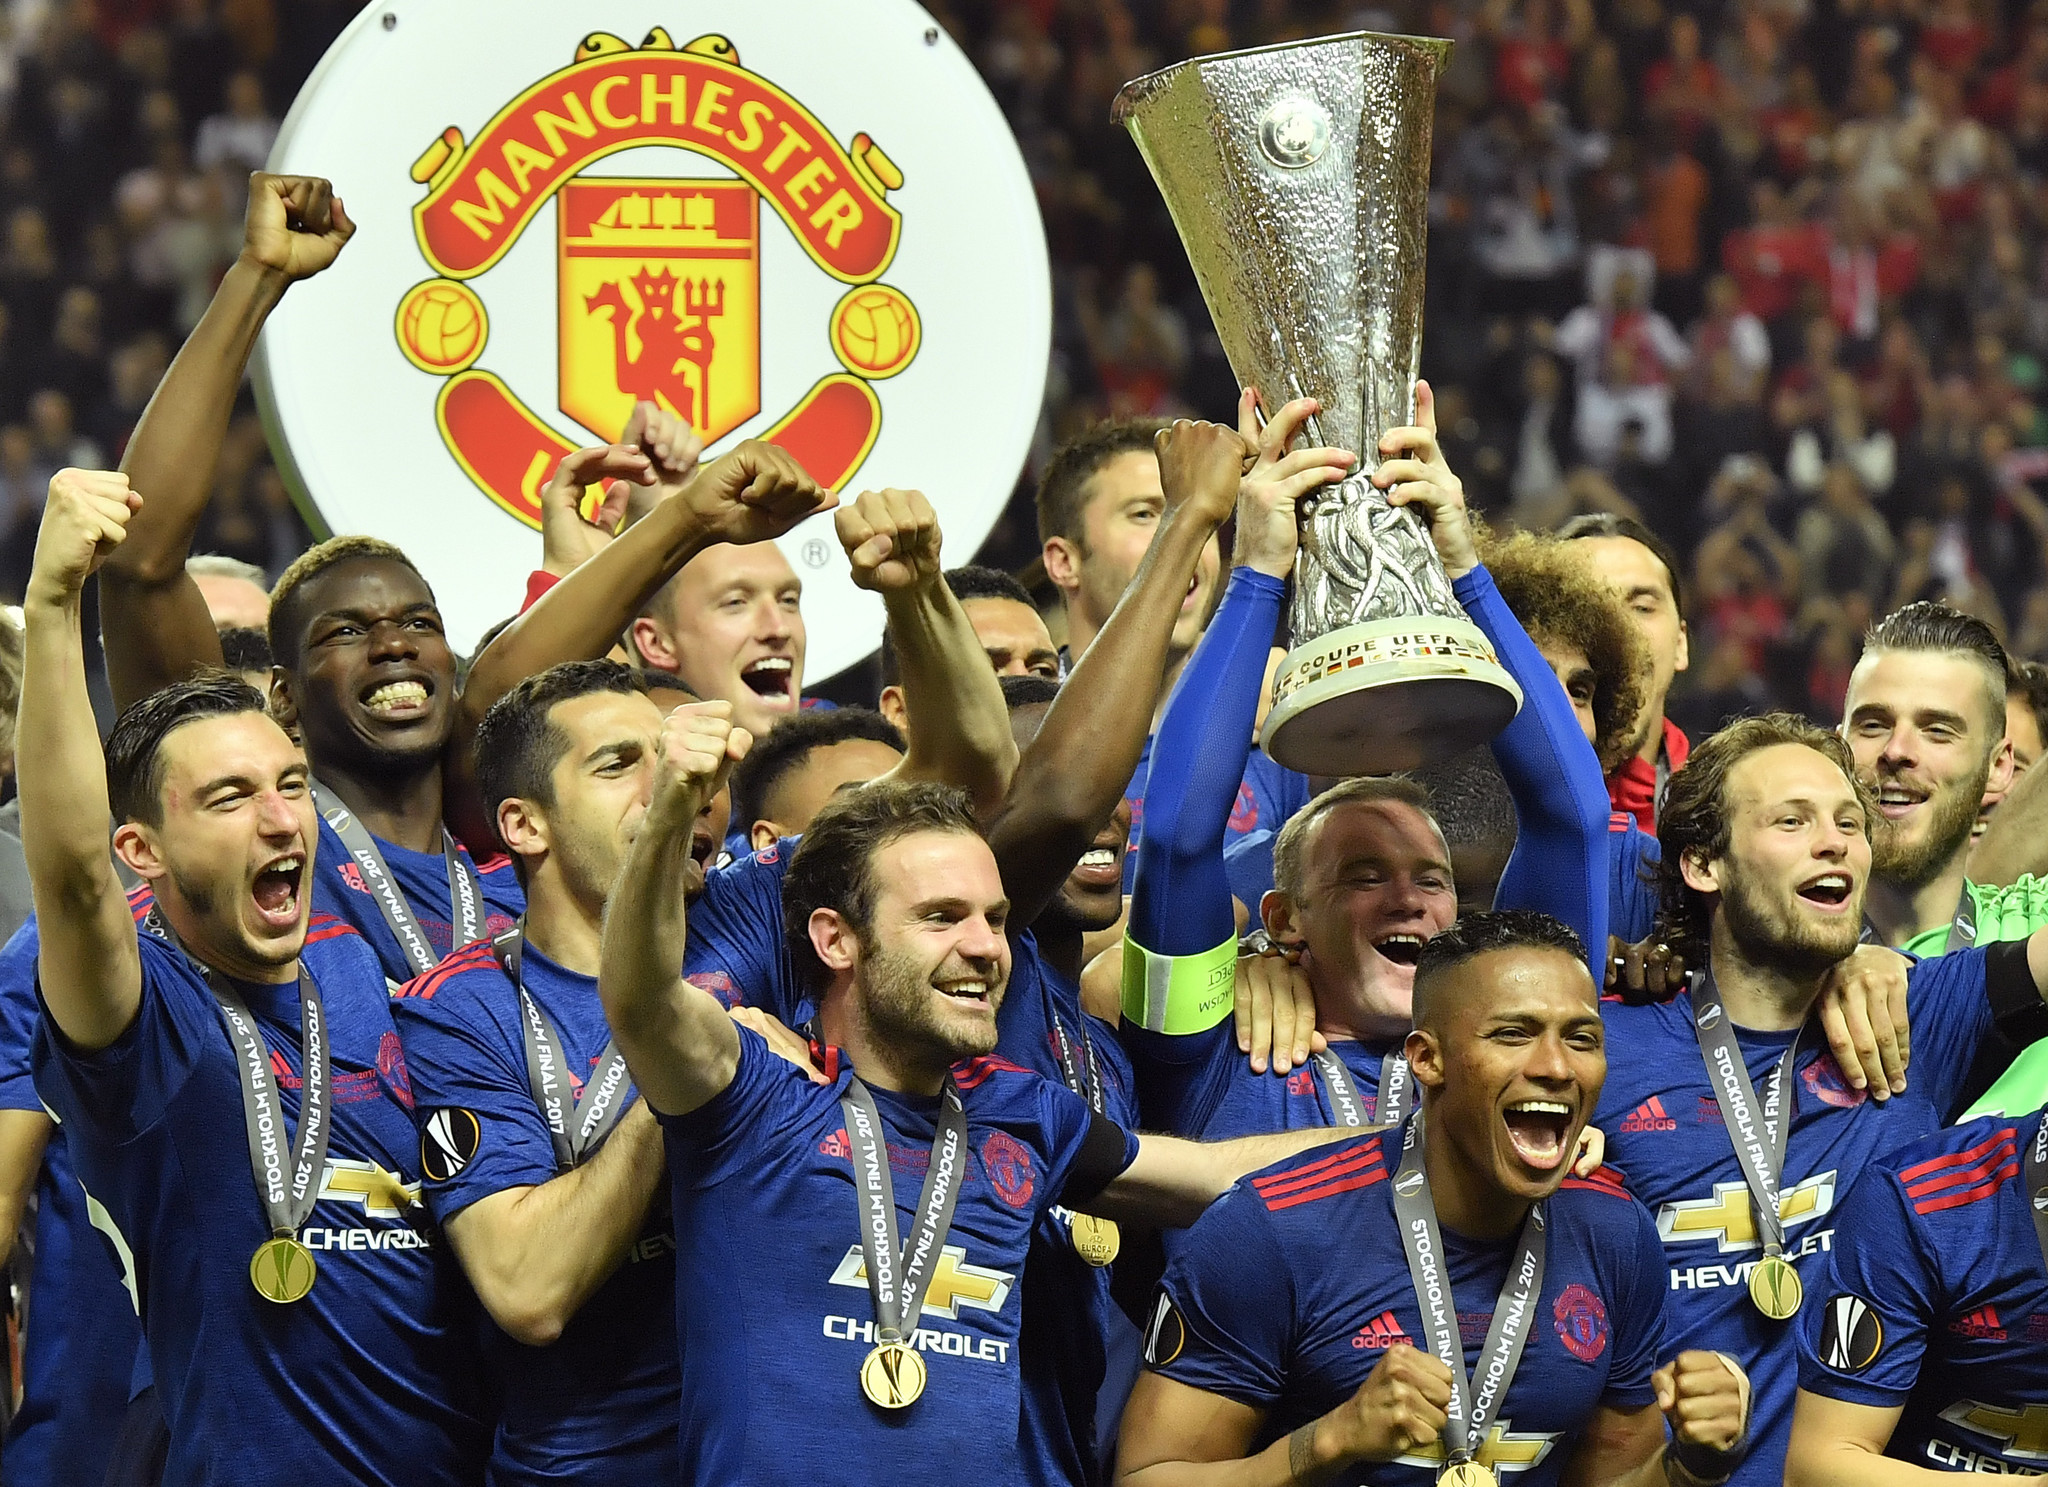 Manchester United honors home city in Europa League title win